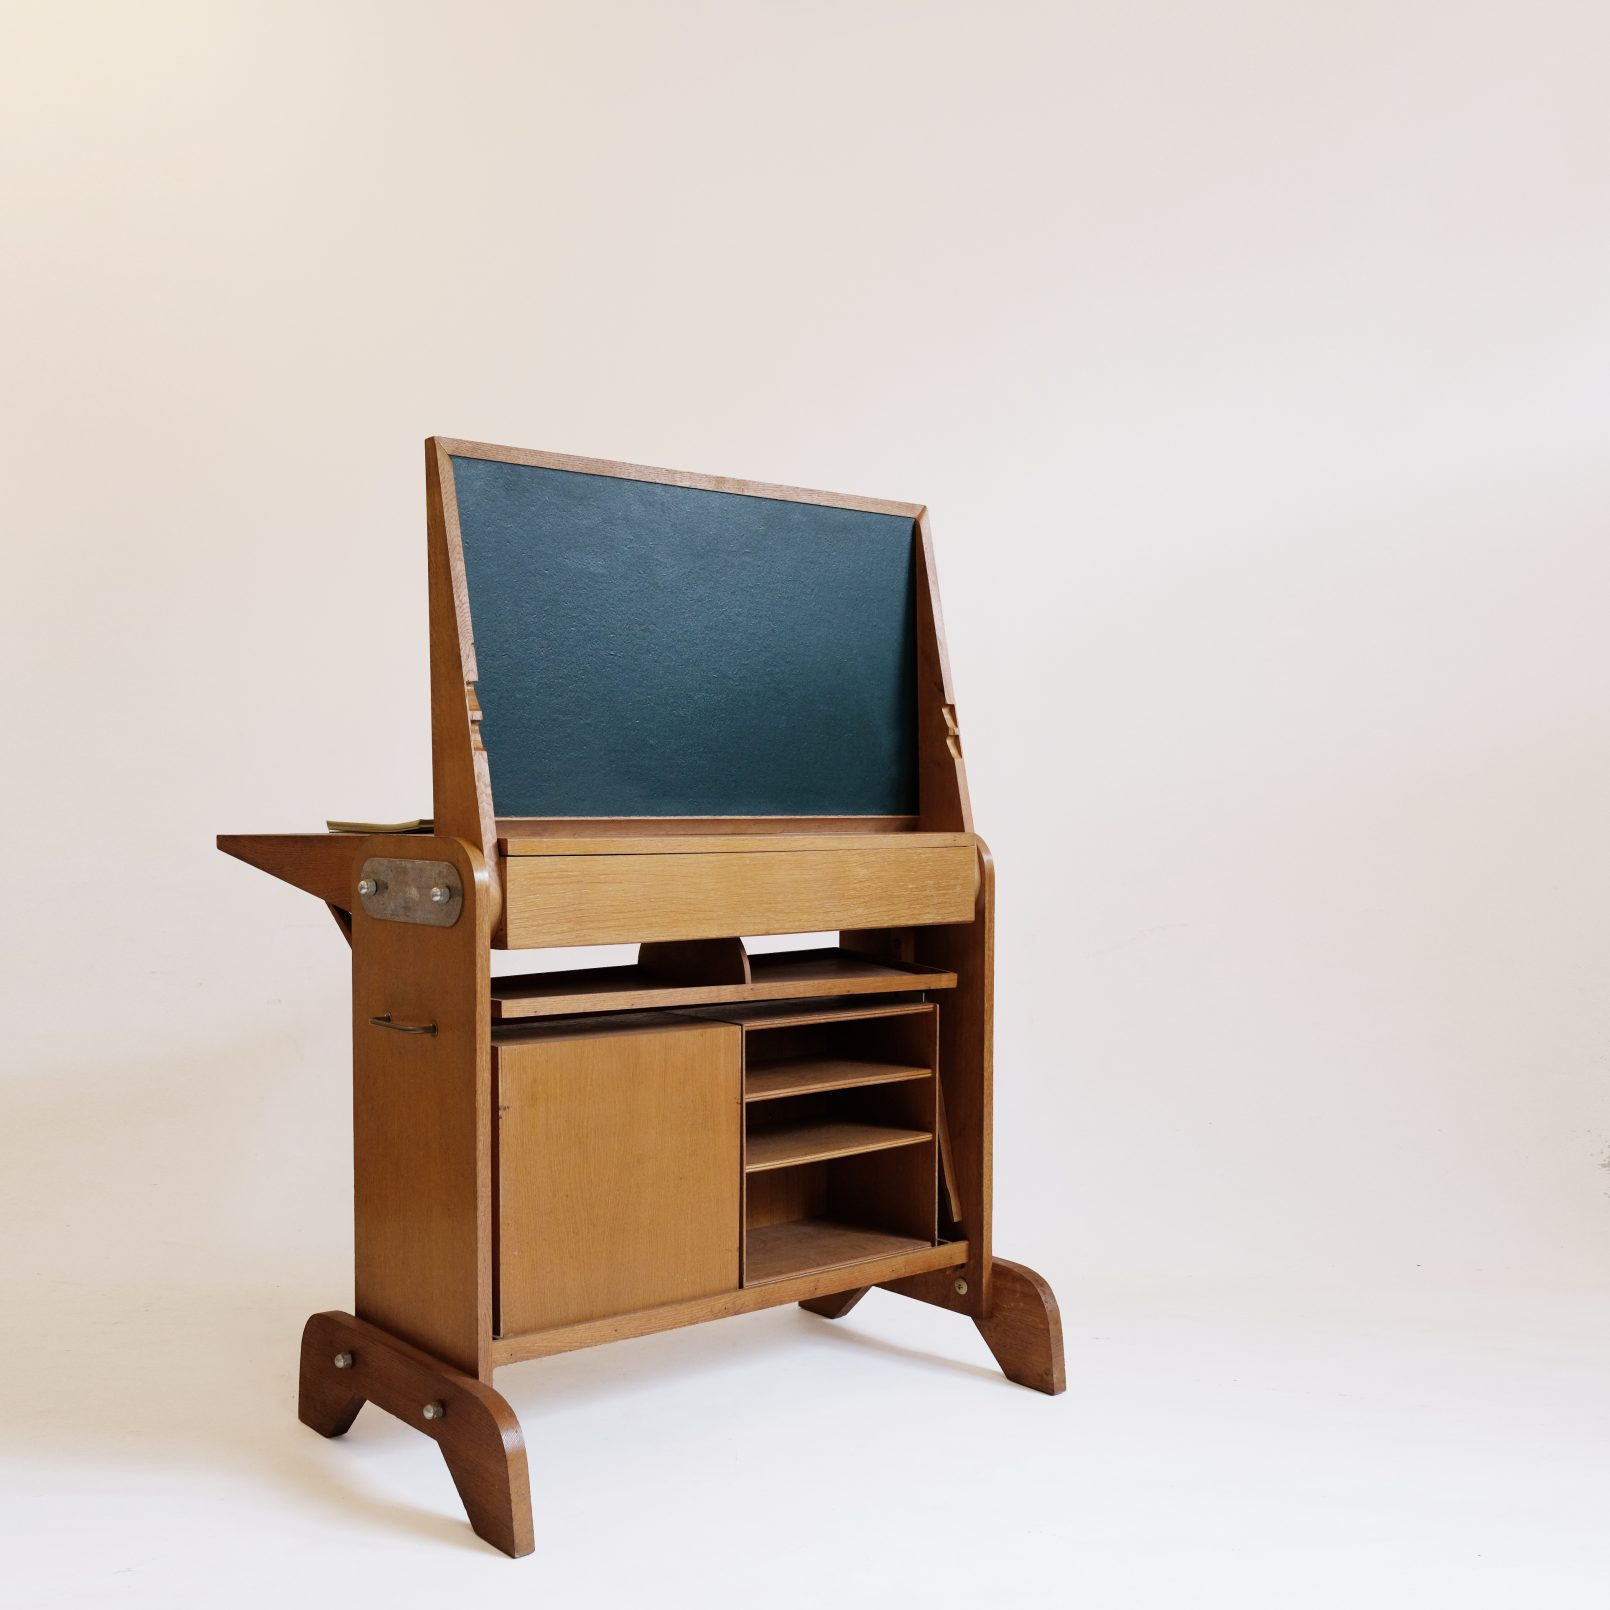 Clever French desk from the 1950s-1960s.